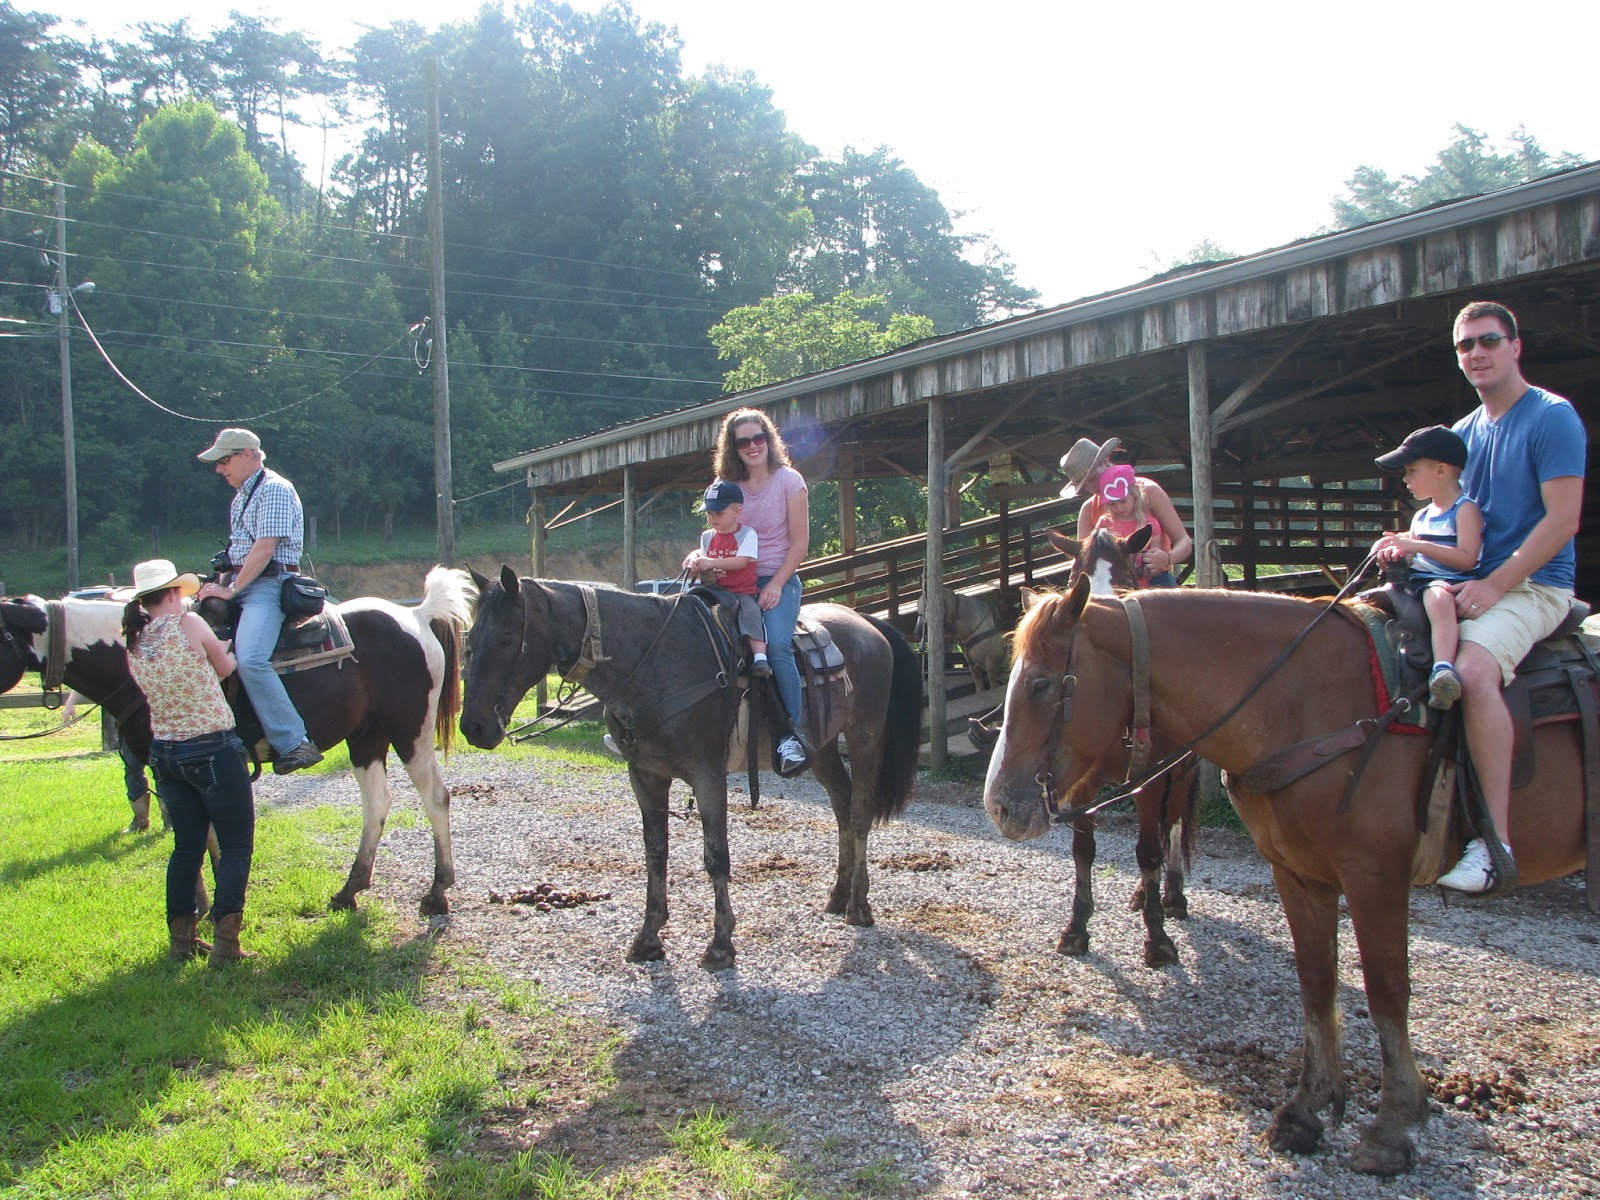 Saddle Up Pigeon Forge horse riding stables.